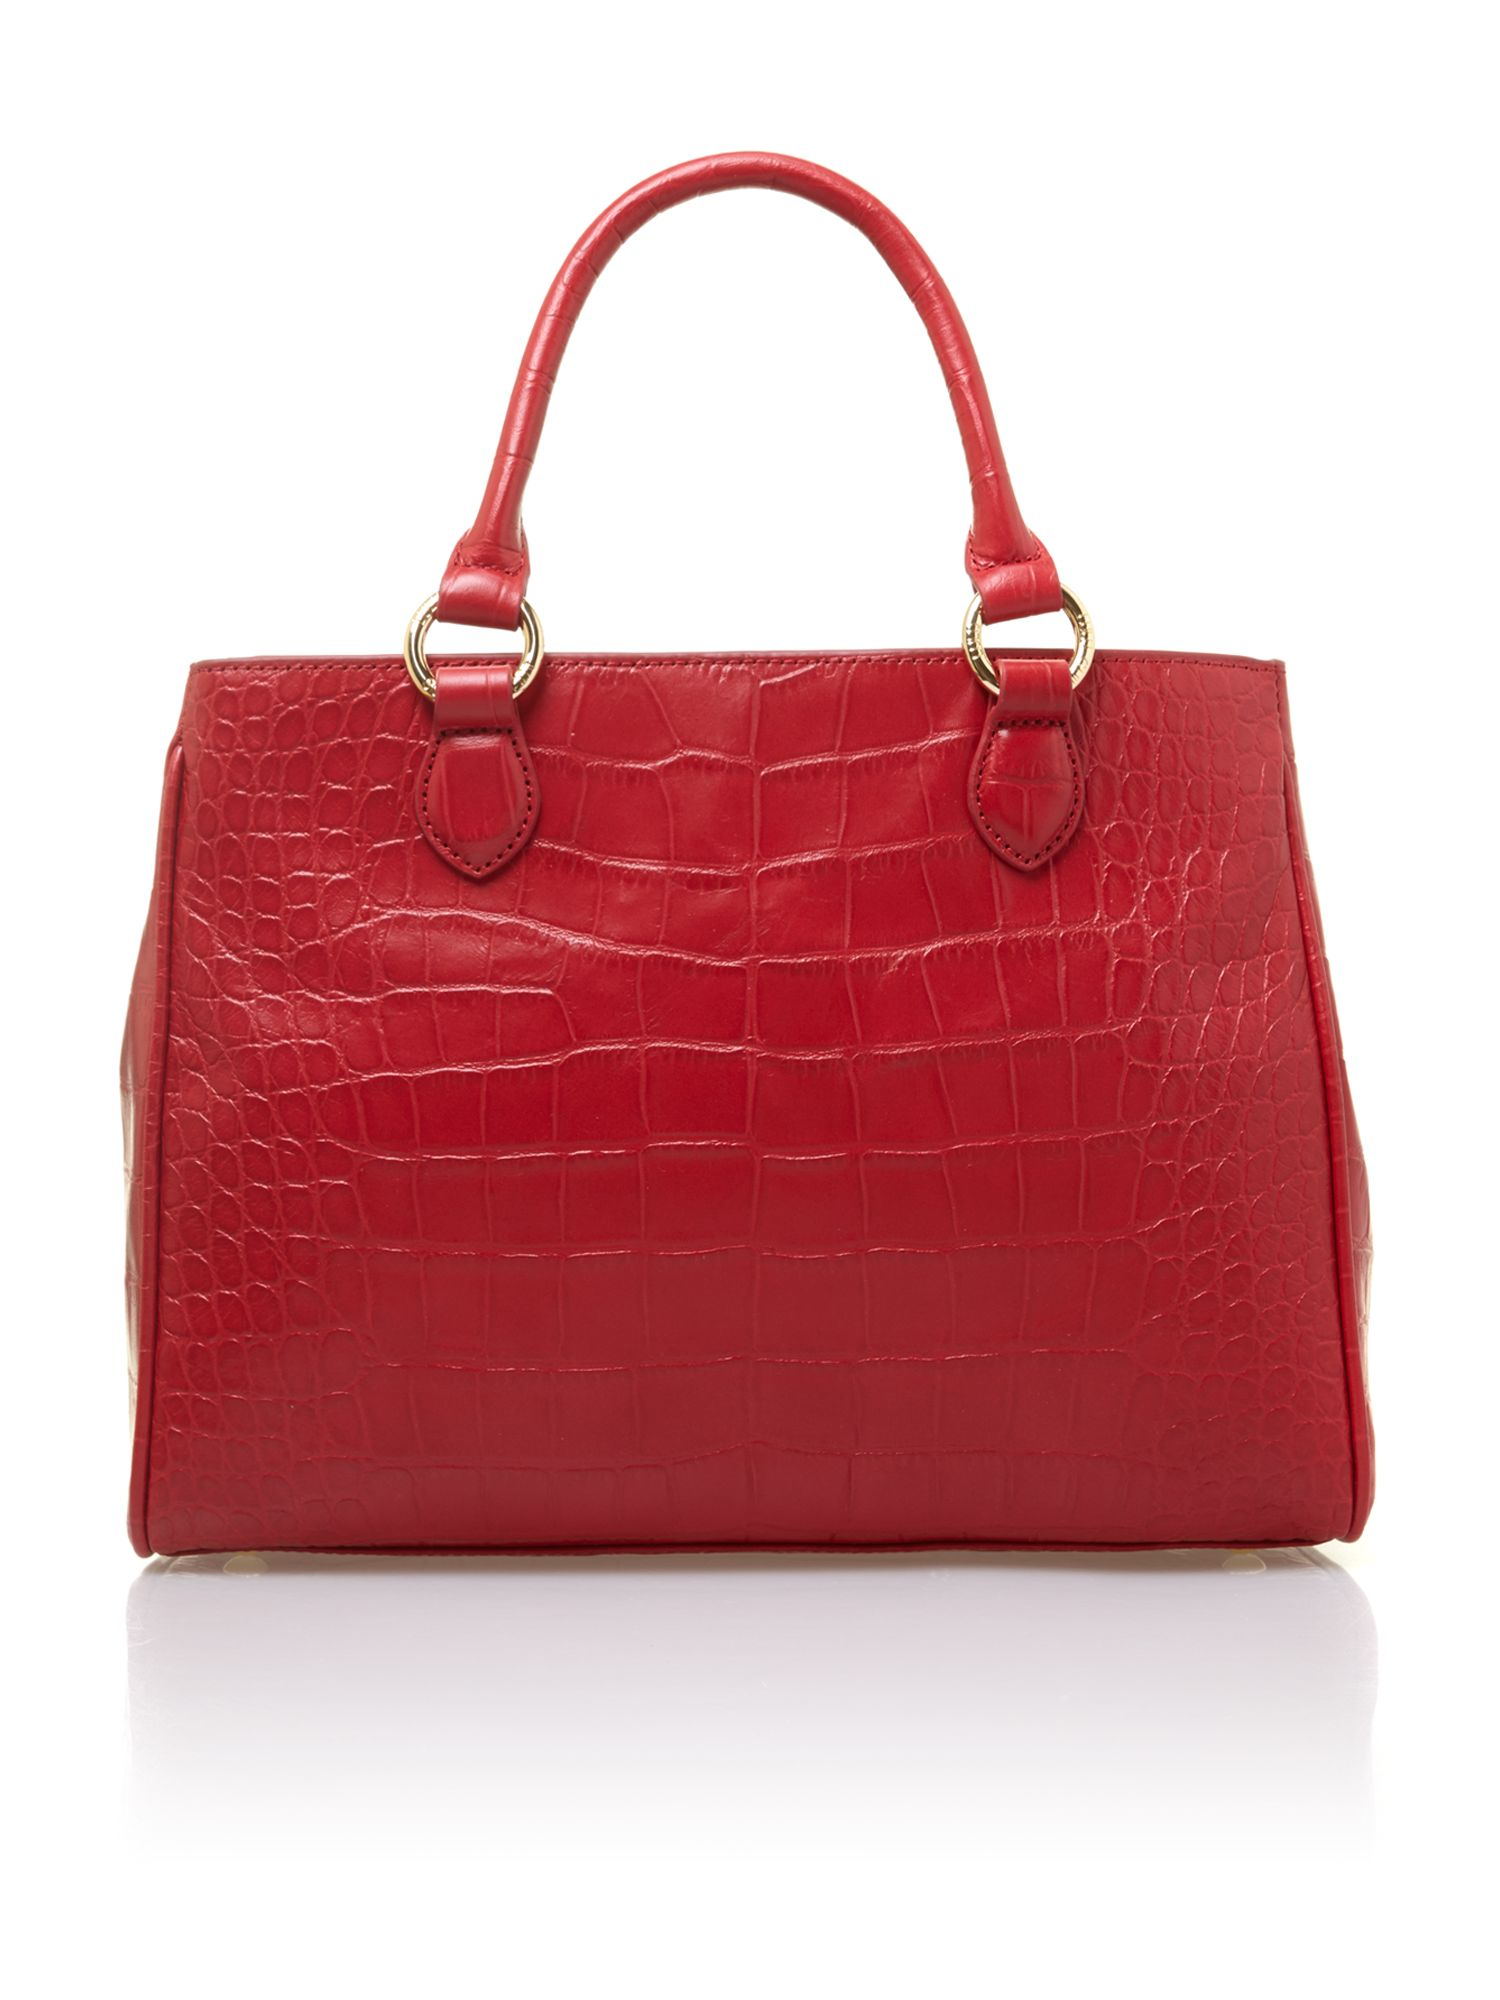 Amelia red tote bag